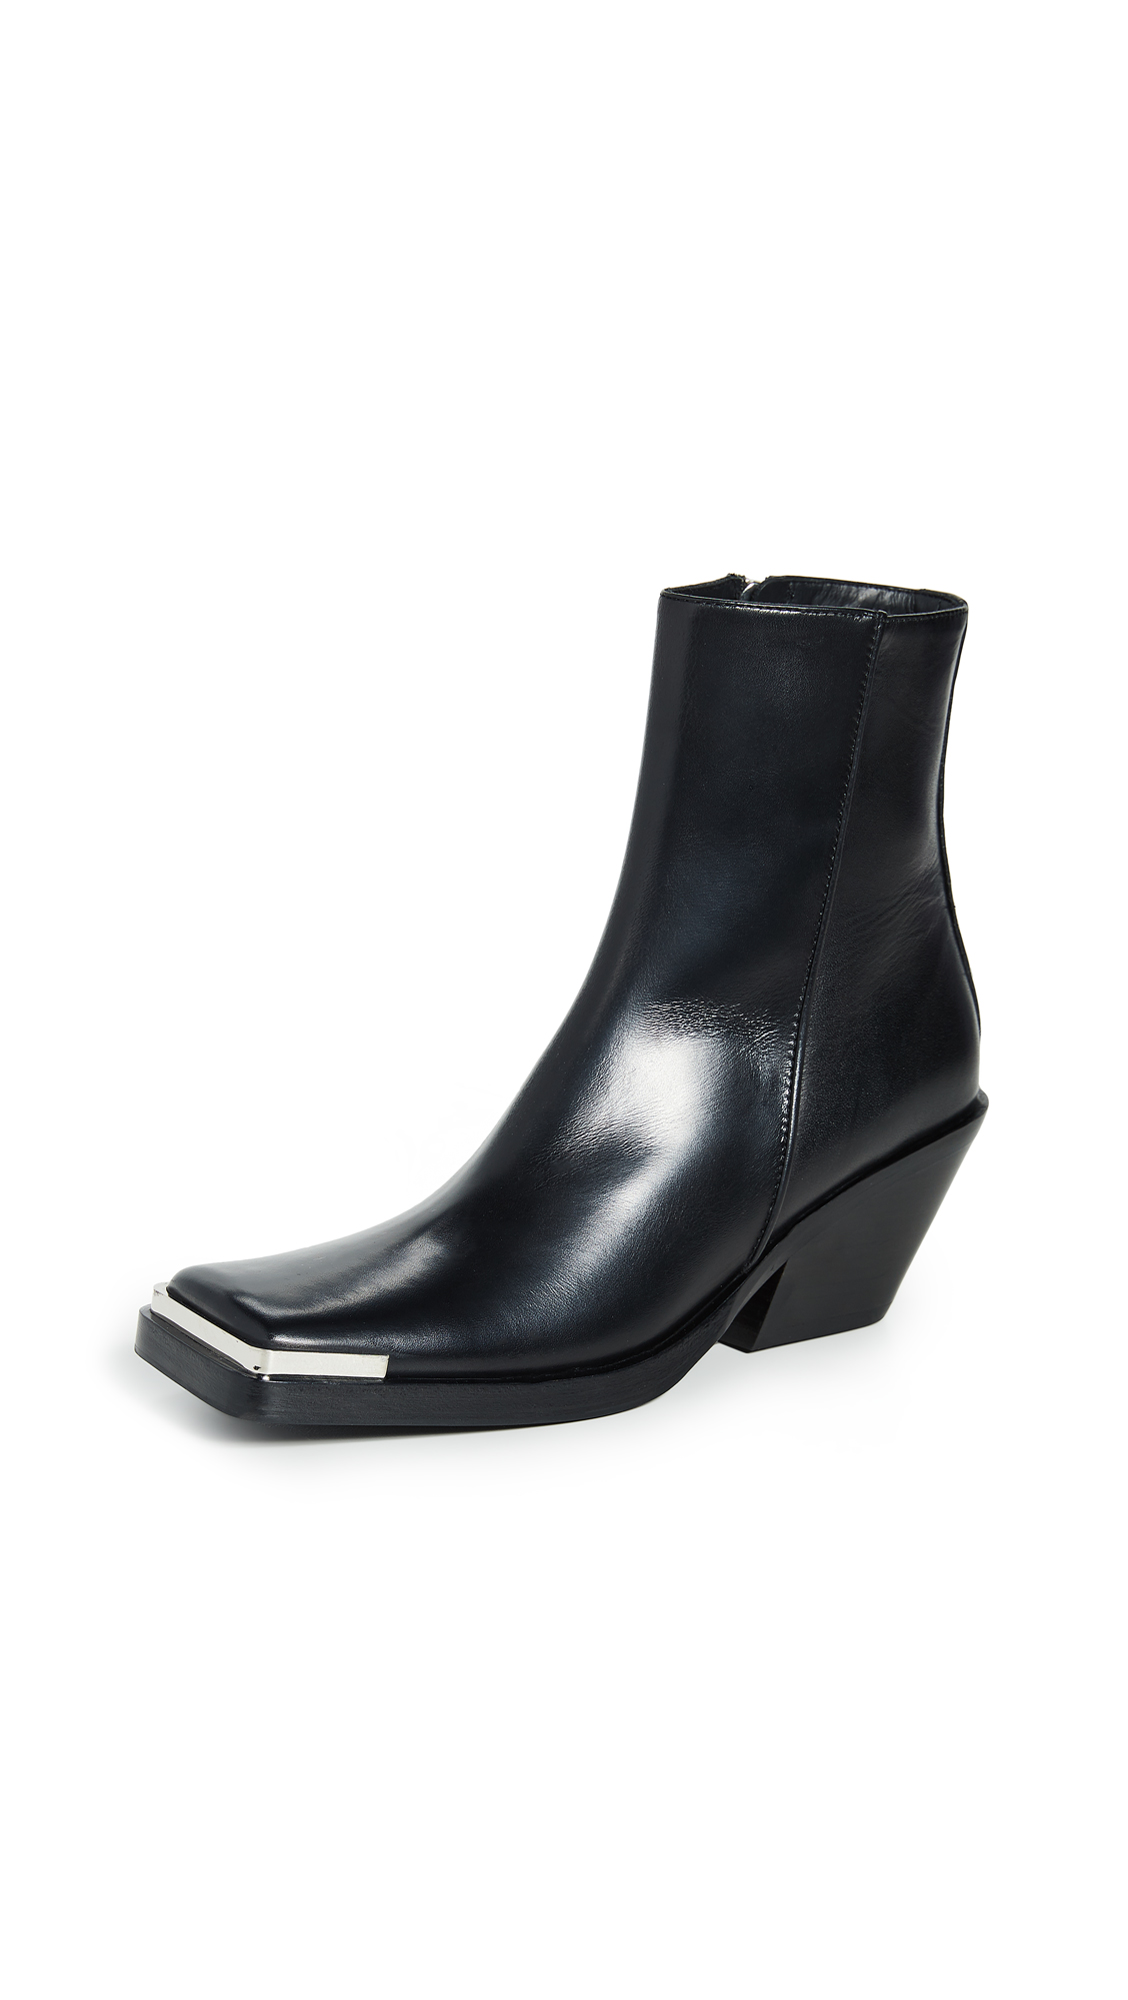 Acne Studios Braxton Booties - Black